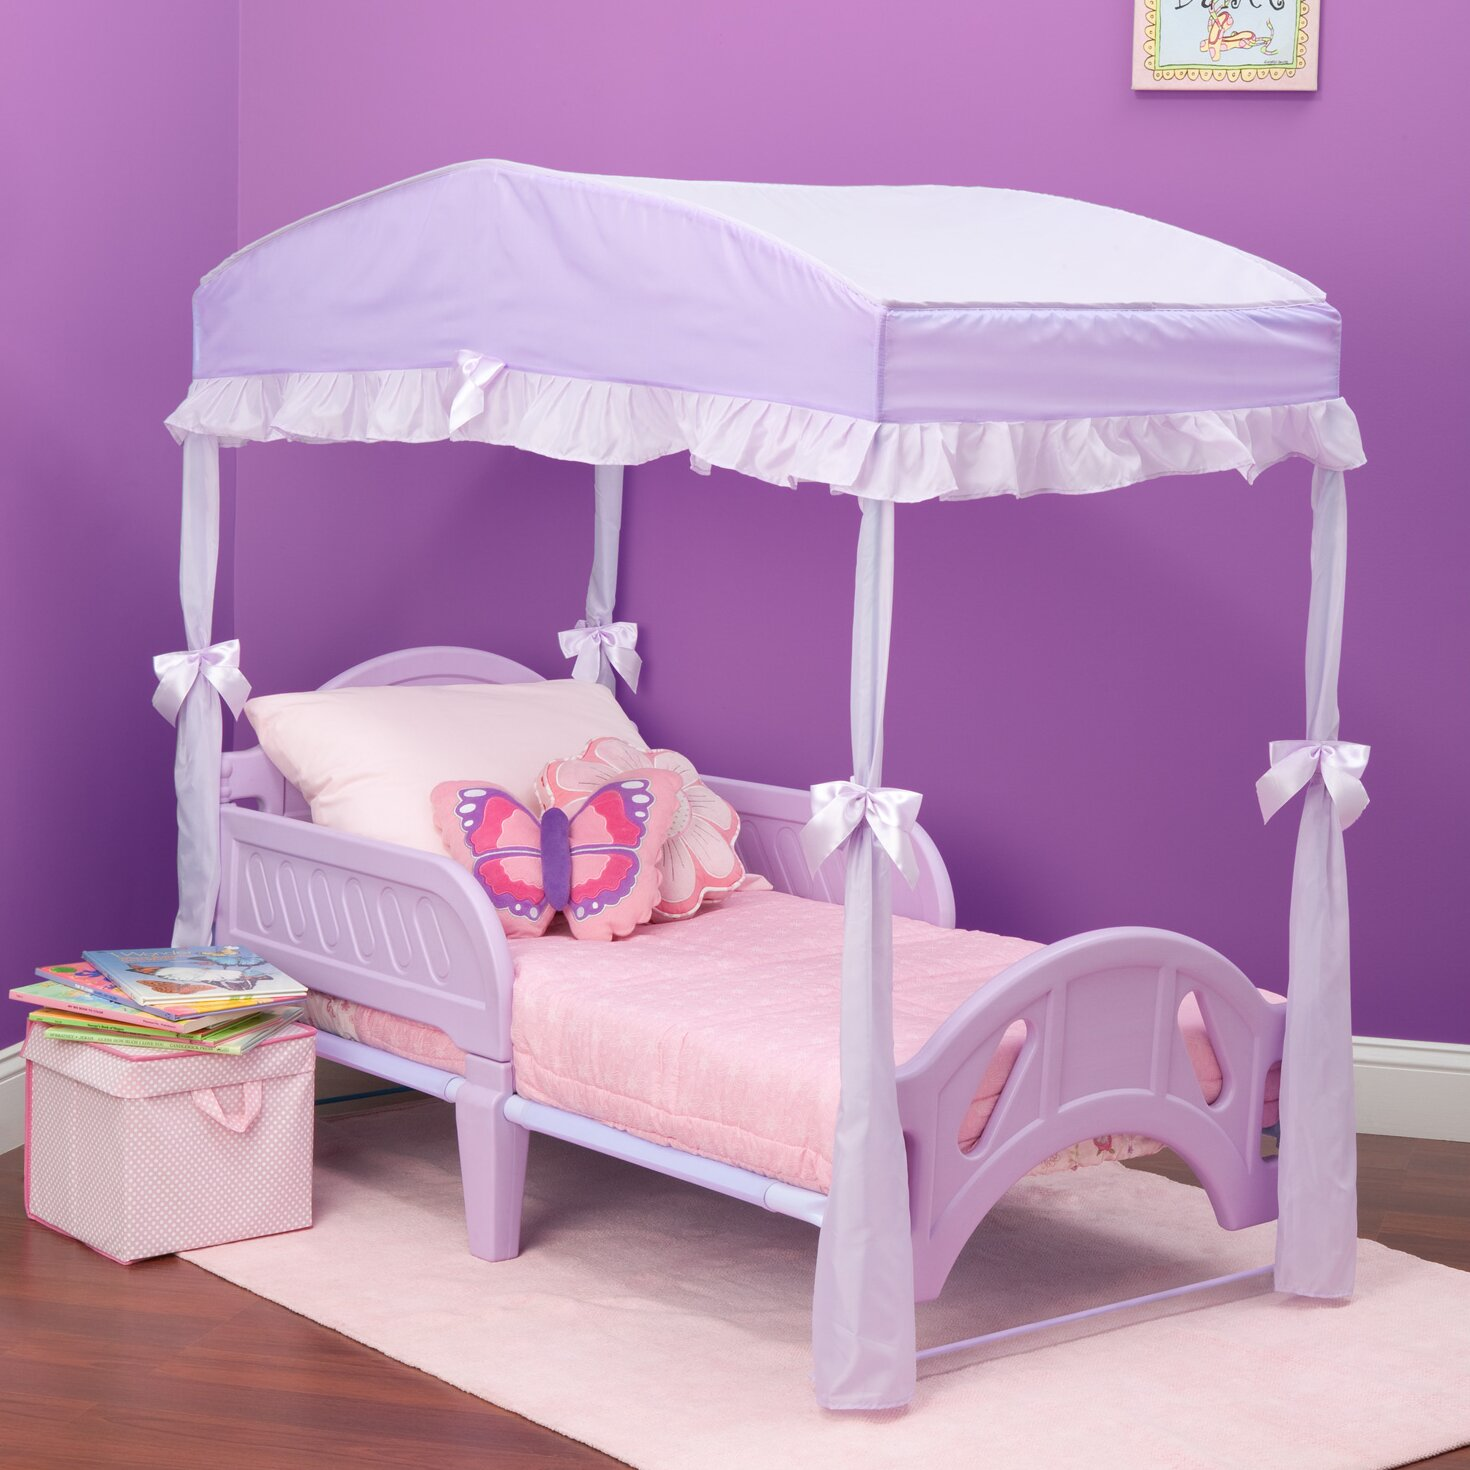 Delta children children 39 s girls canopy for toddler bed for Toddler bunk beds